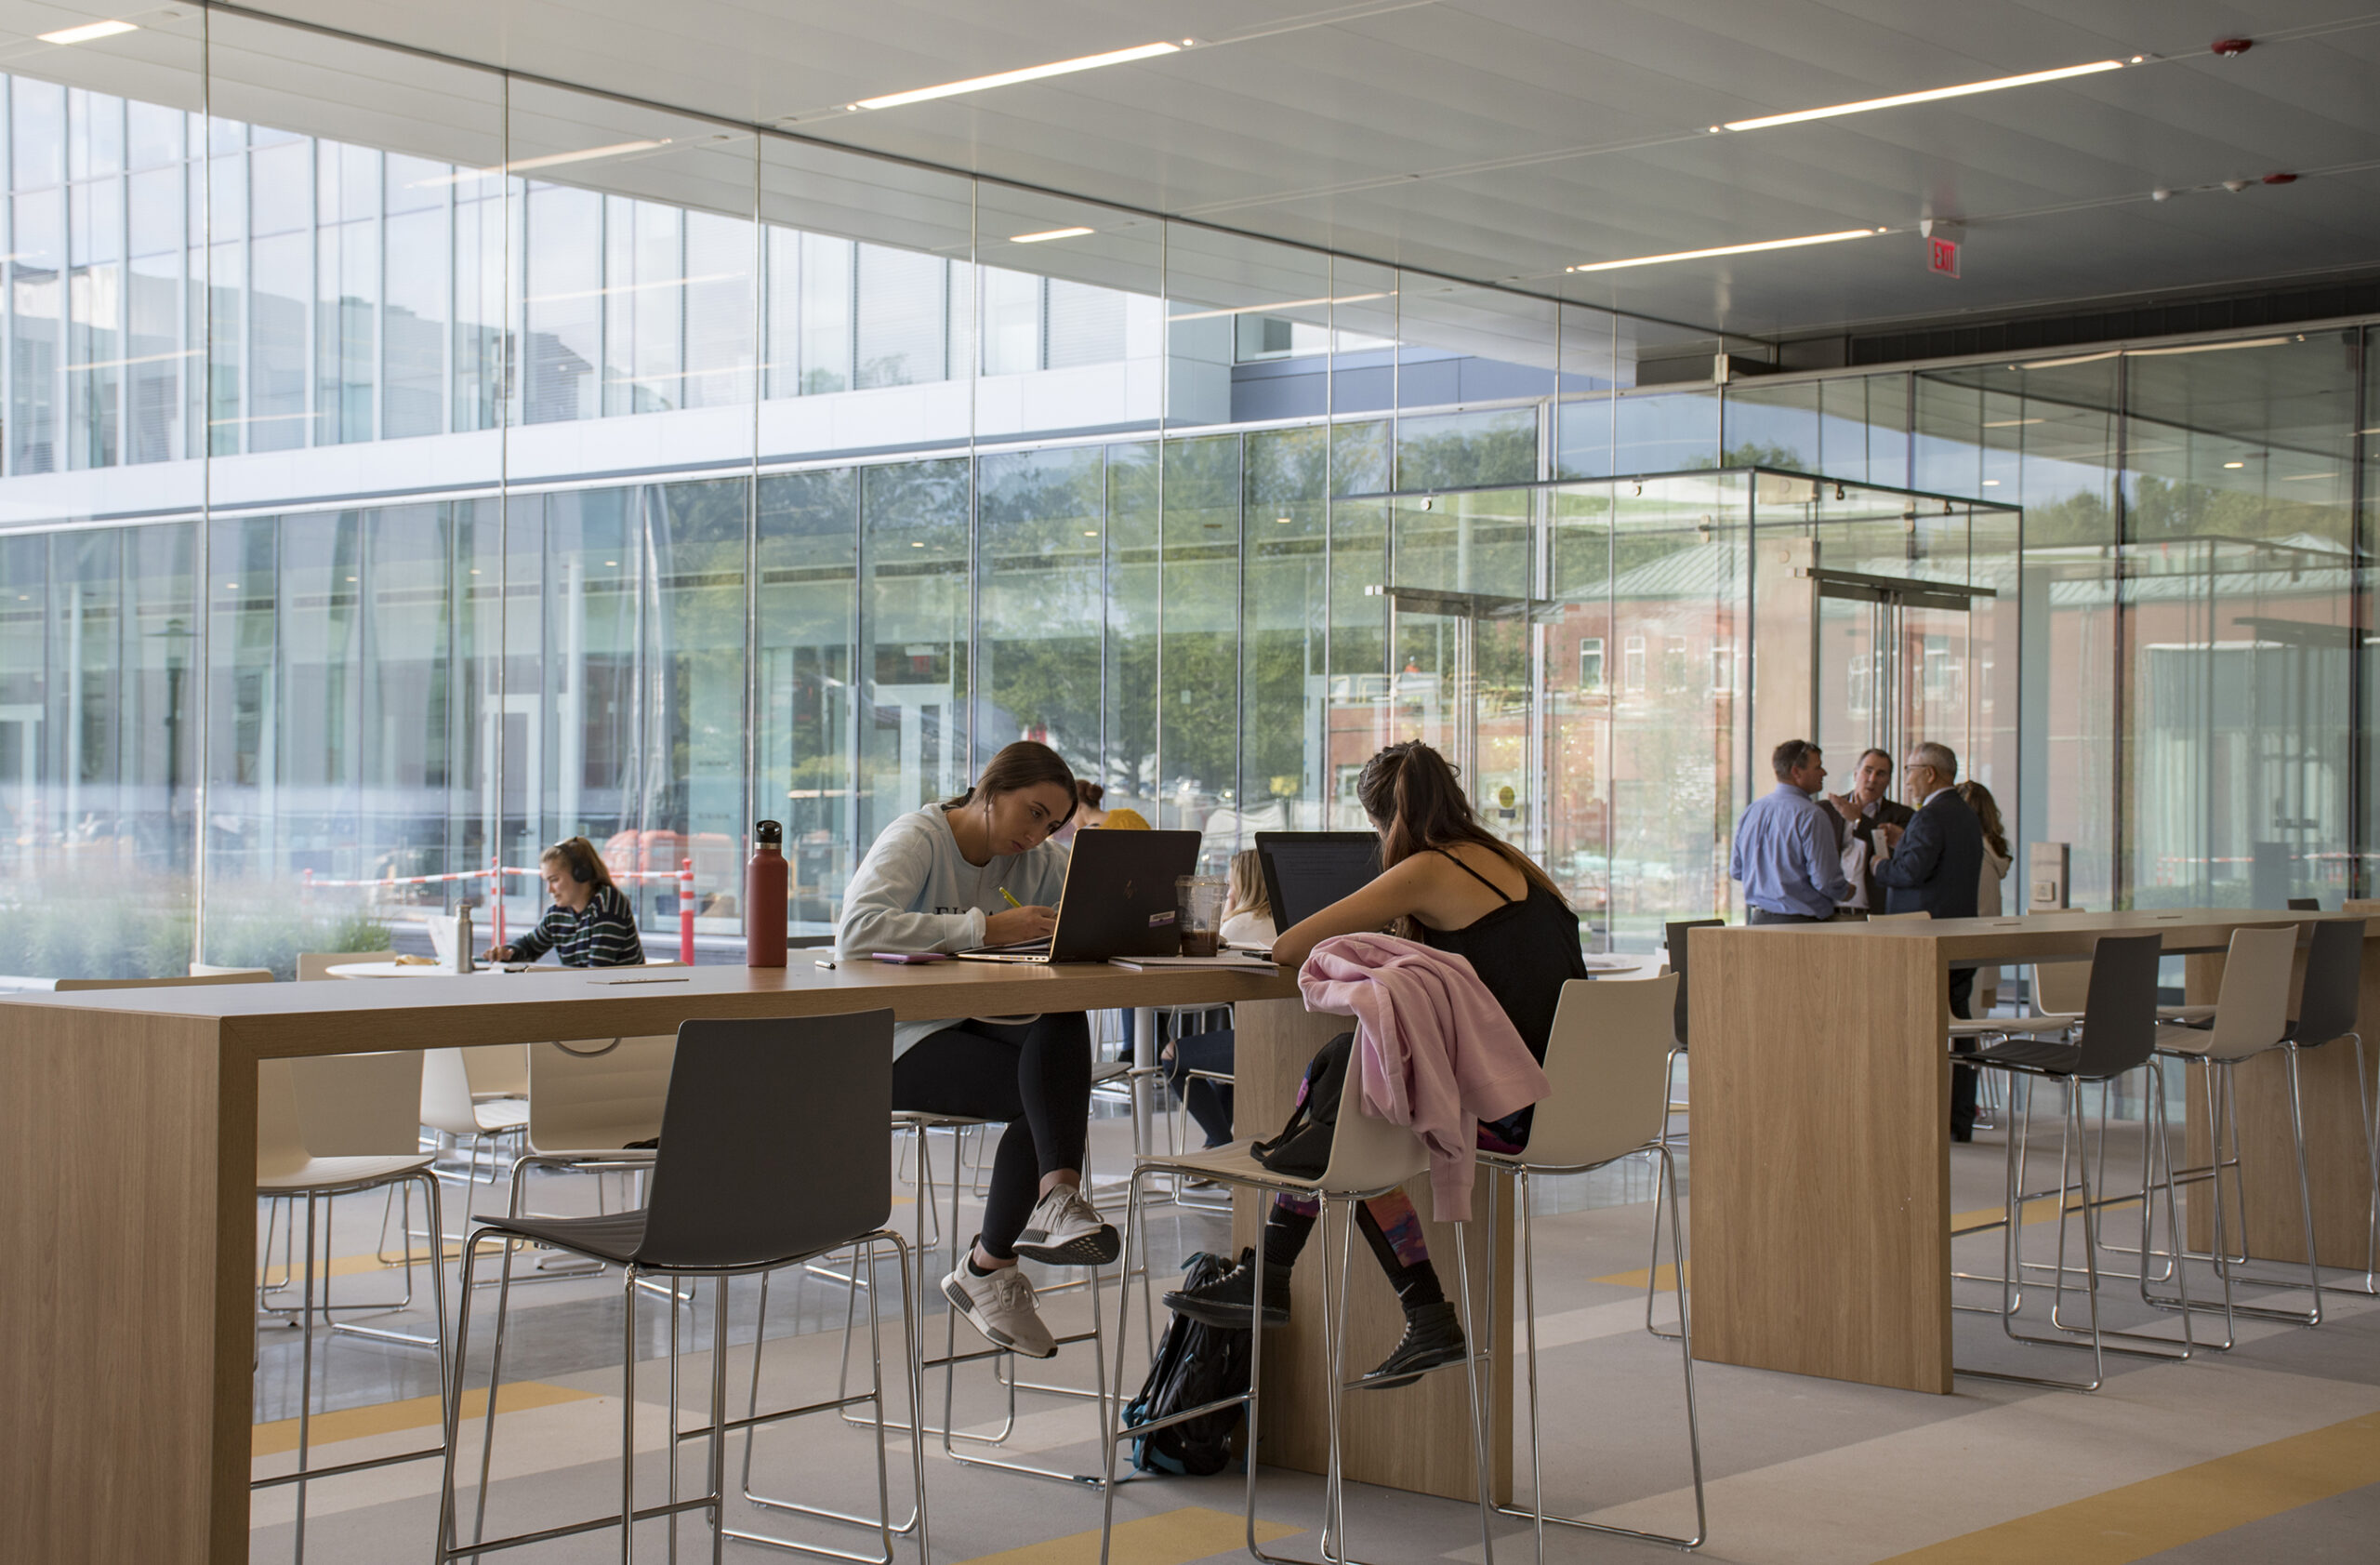 Students study in the new Fascitelli Center for Advanced Engineering.